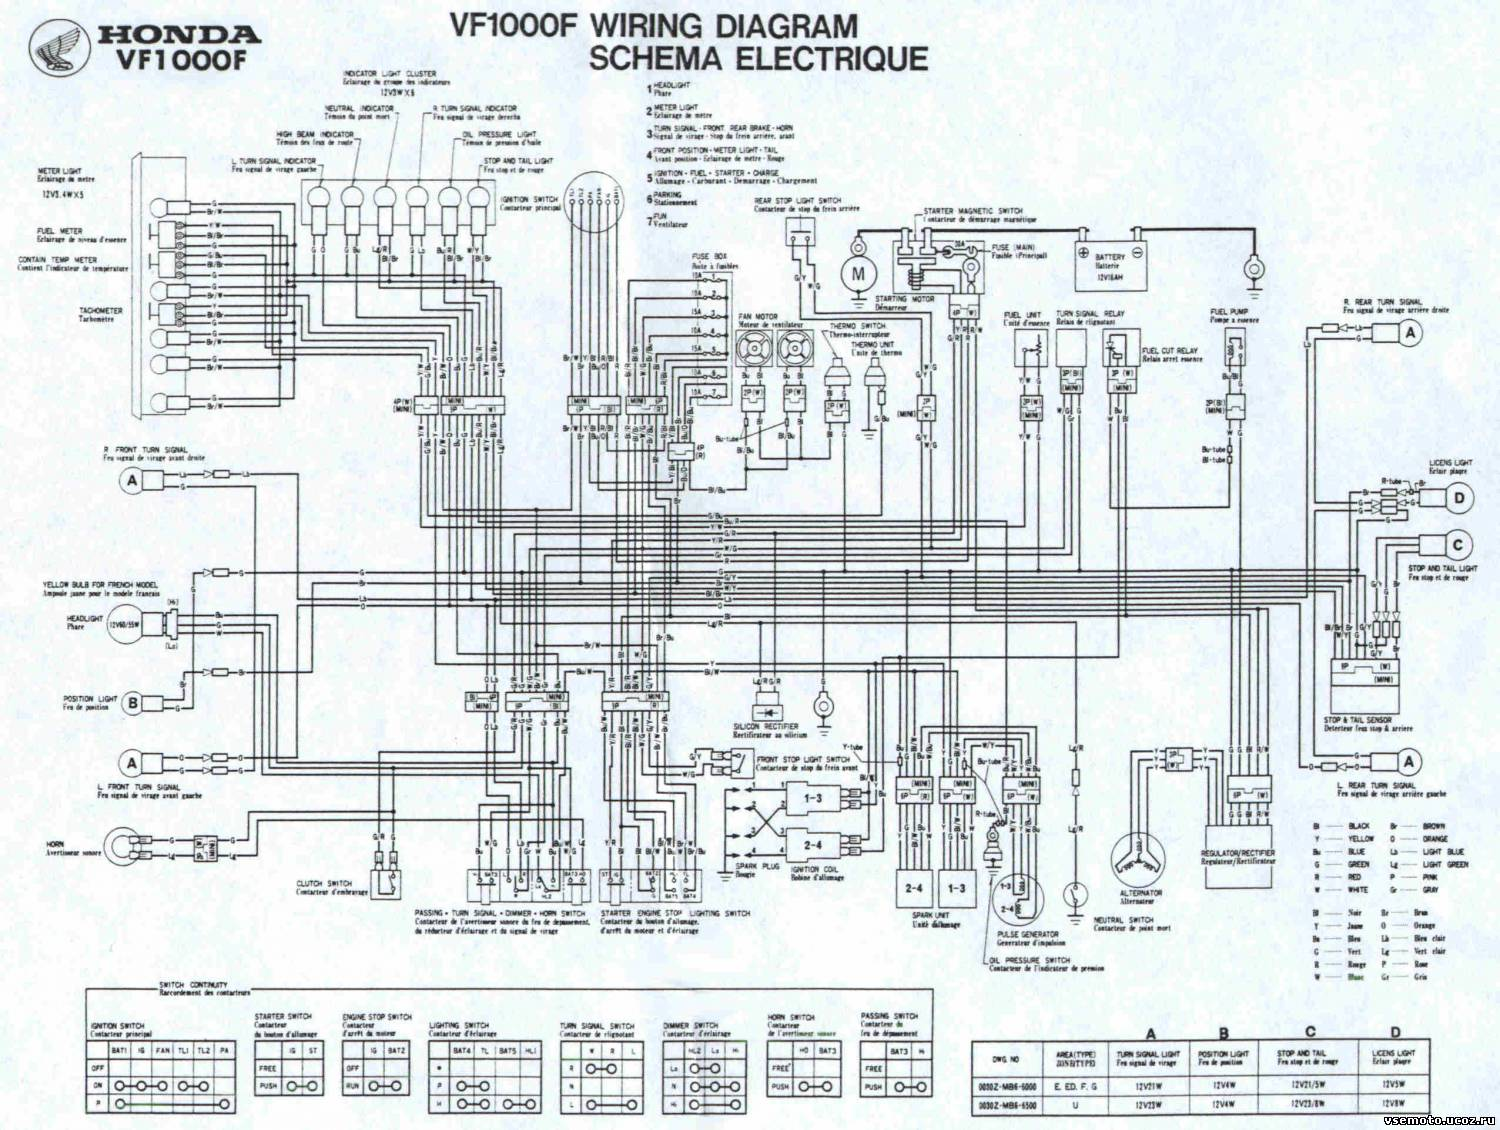 1997 Cbr 900 Wiring Diagram: Beautiful Cbr 900 Wiring Diagram Pictures  Inspiration - Simple rh